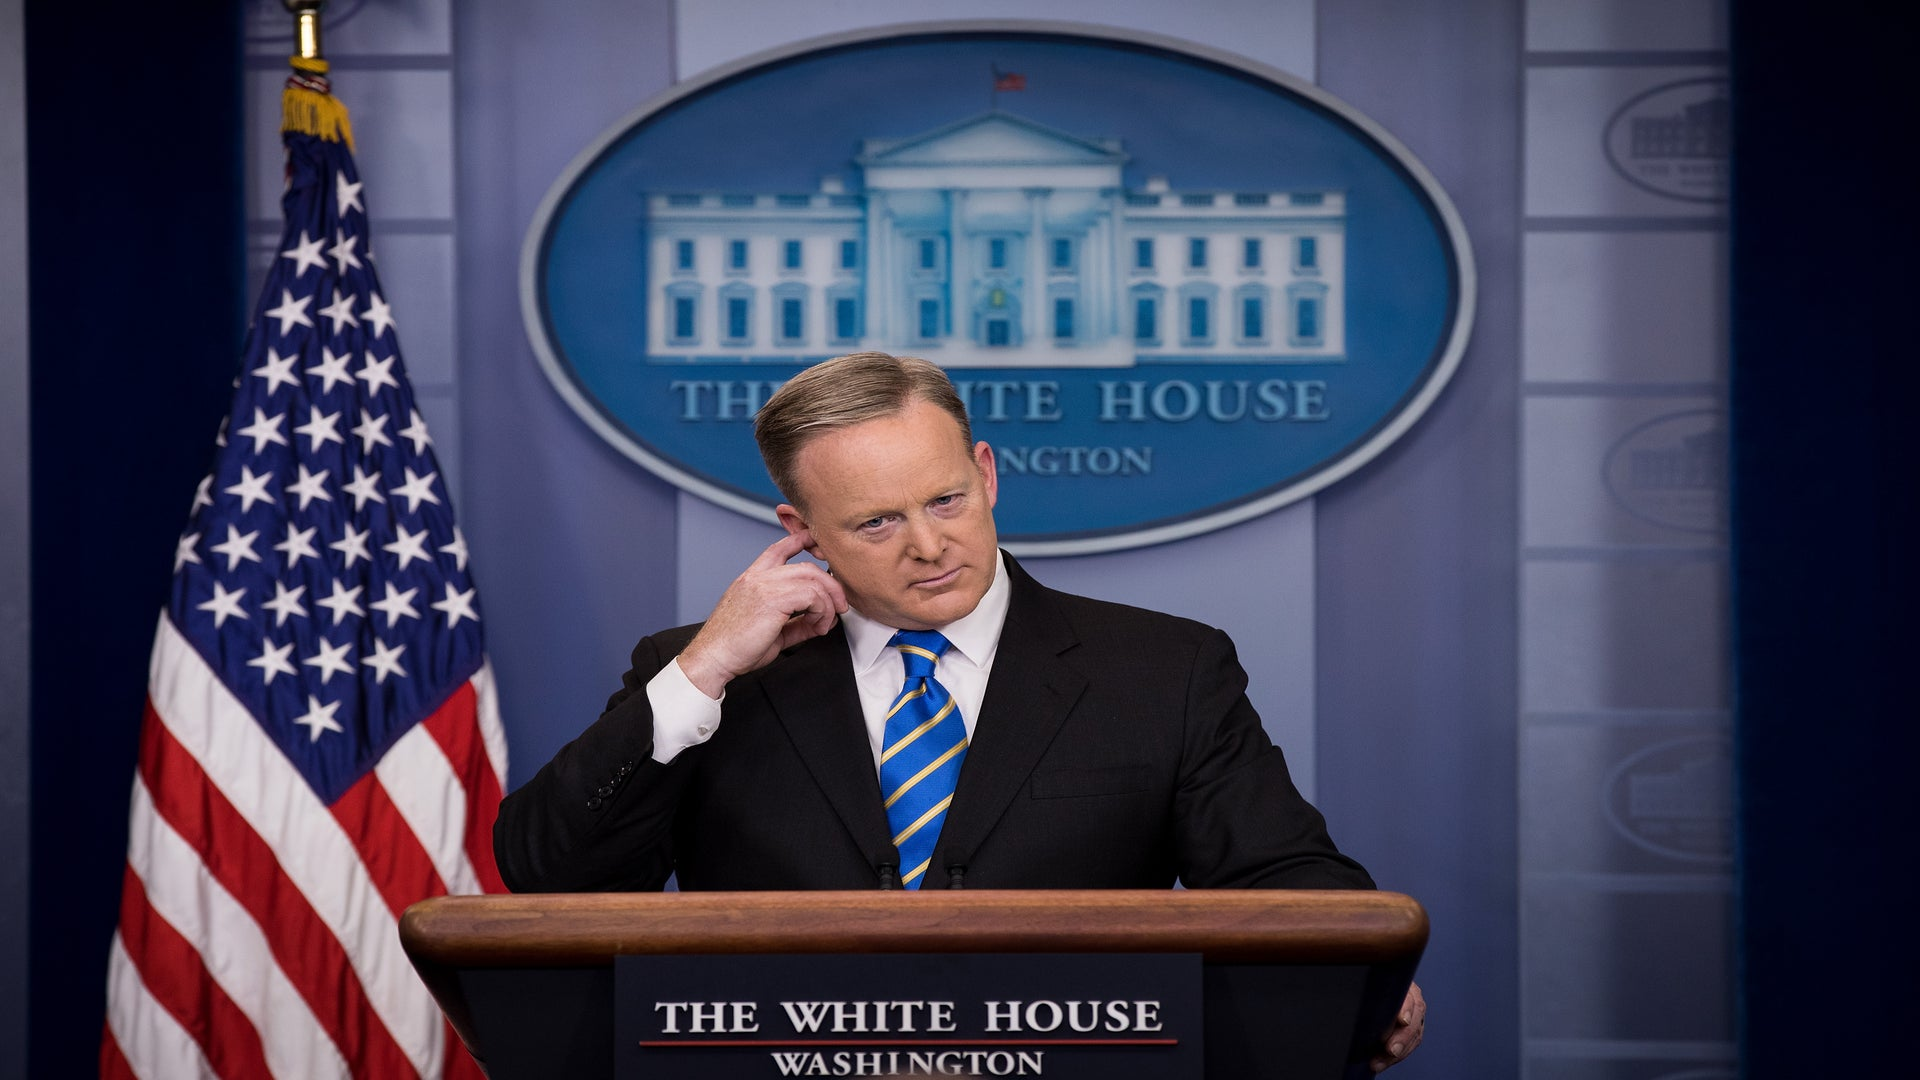 Trump Press Secretary Makes Embarrassing Reference To MLK Jr. During White House Presser